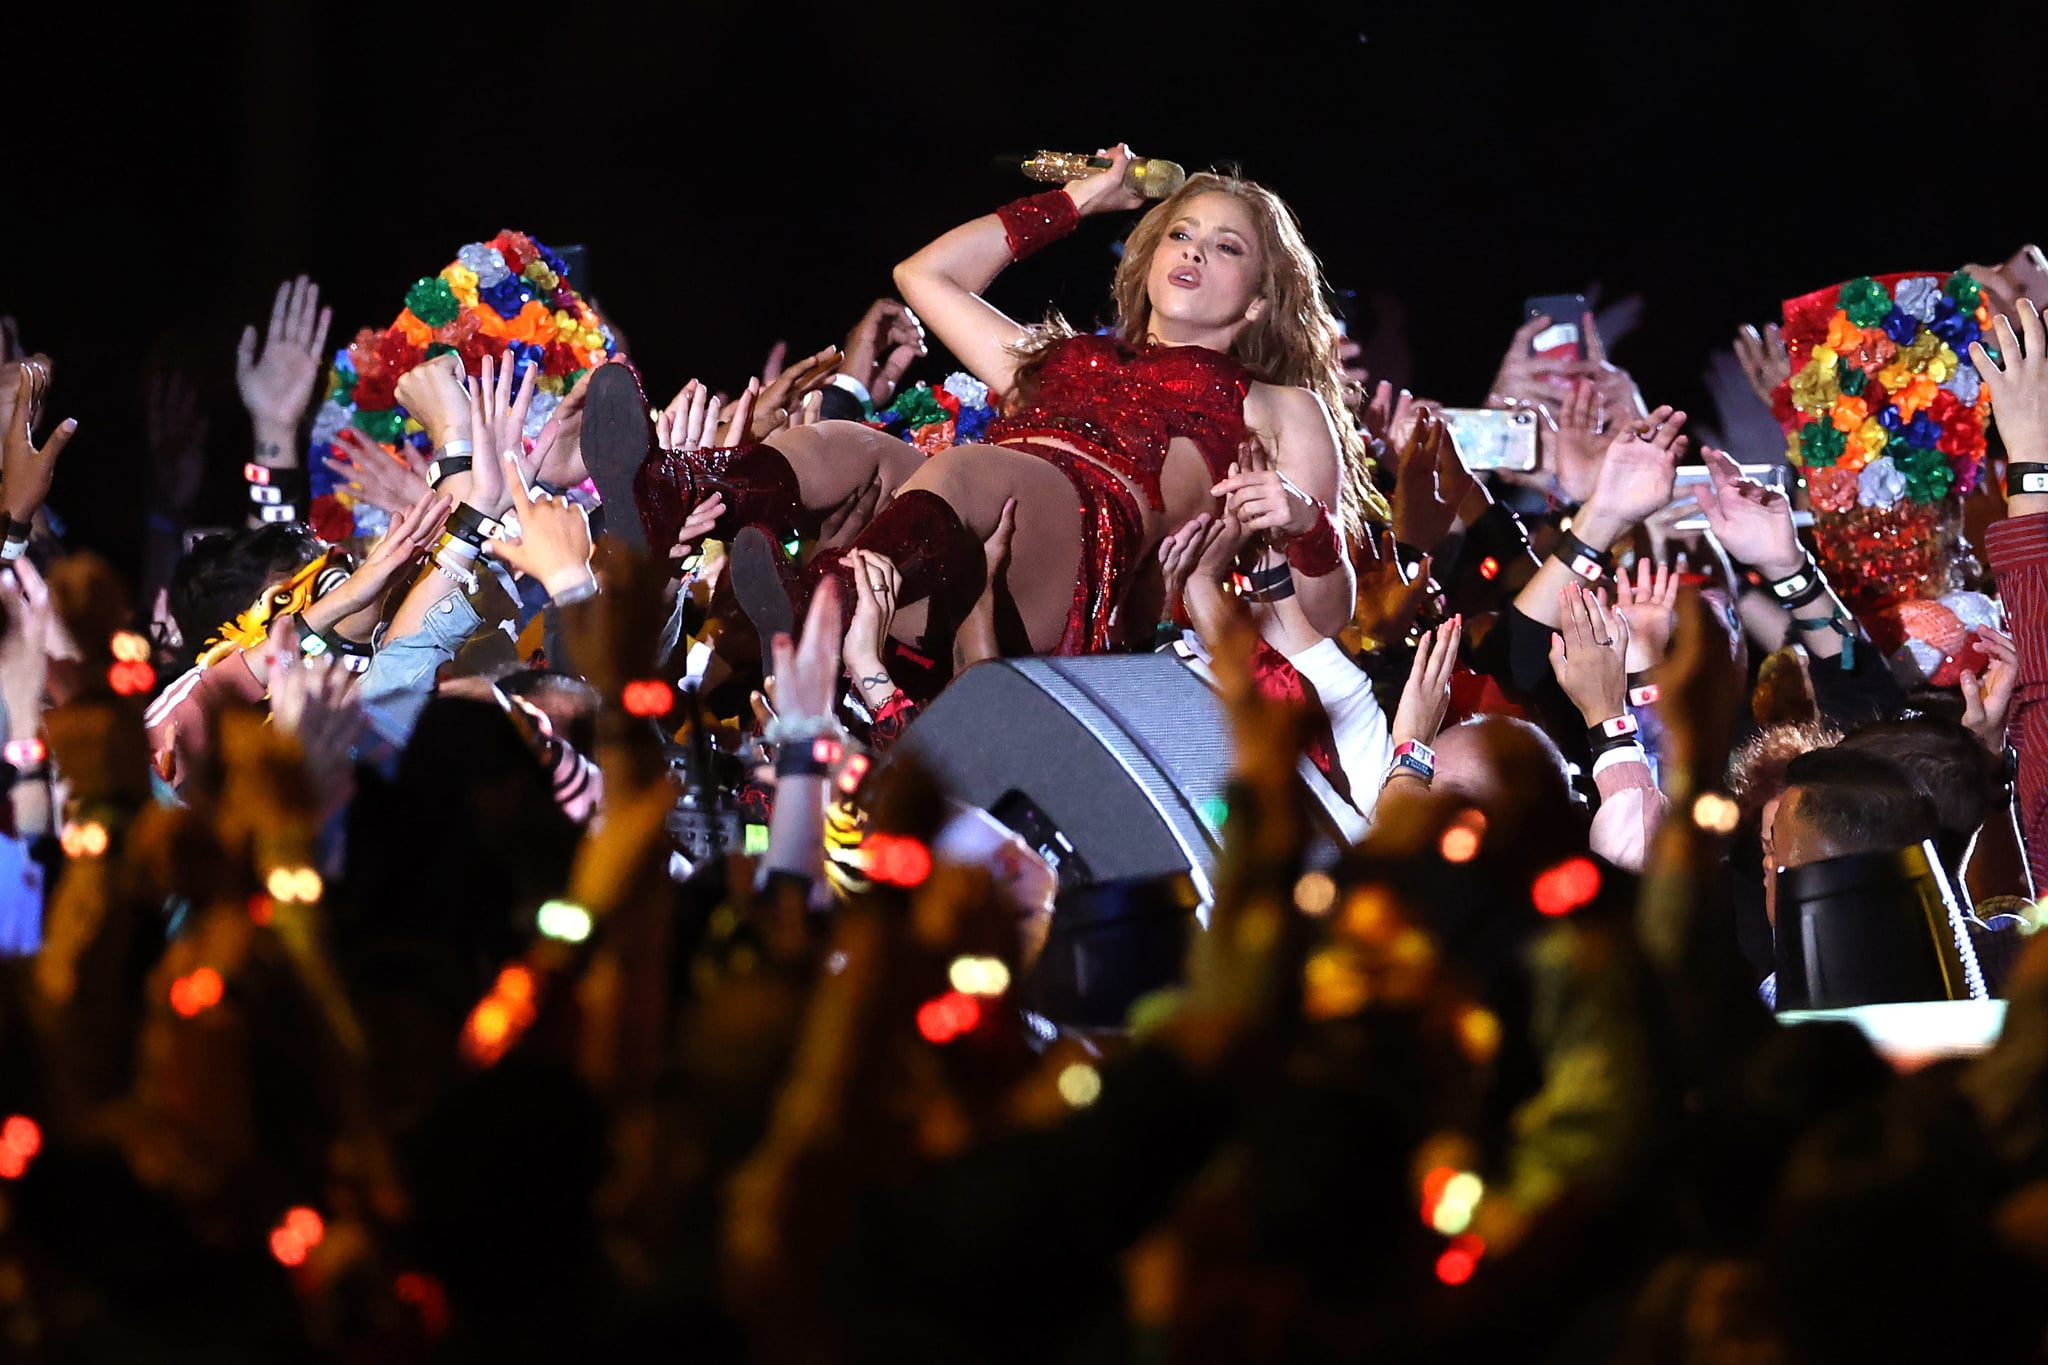 MIAMI, FLORIDA - FEBRUARY 02: Colombian singer Shakira performs during the Pepsi Super Bowl LIV Halftime Show at Hard Rock Stadium on February 02, 2020 in Miami, Florida. (Photo by Al Bello/Getty Images)